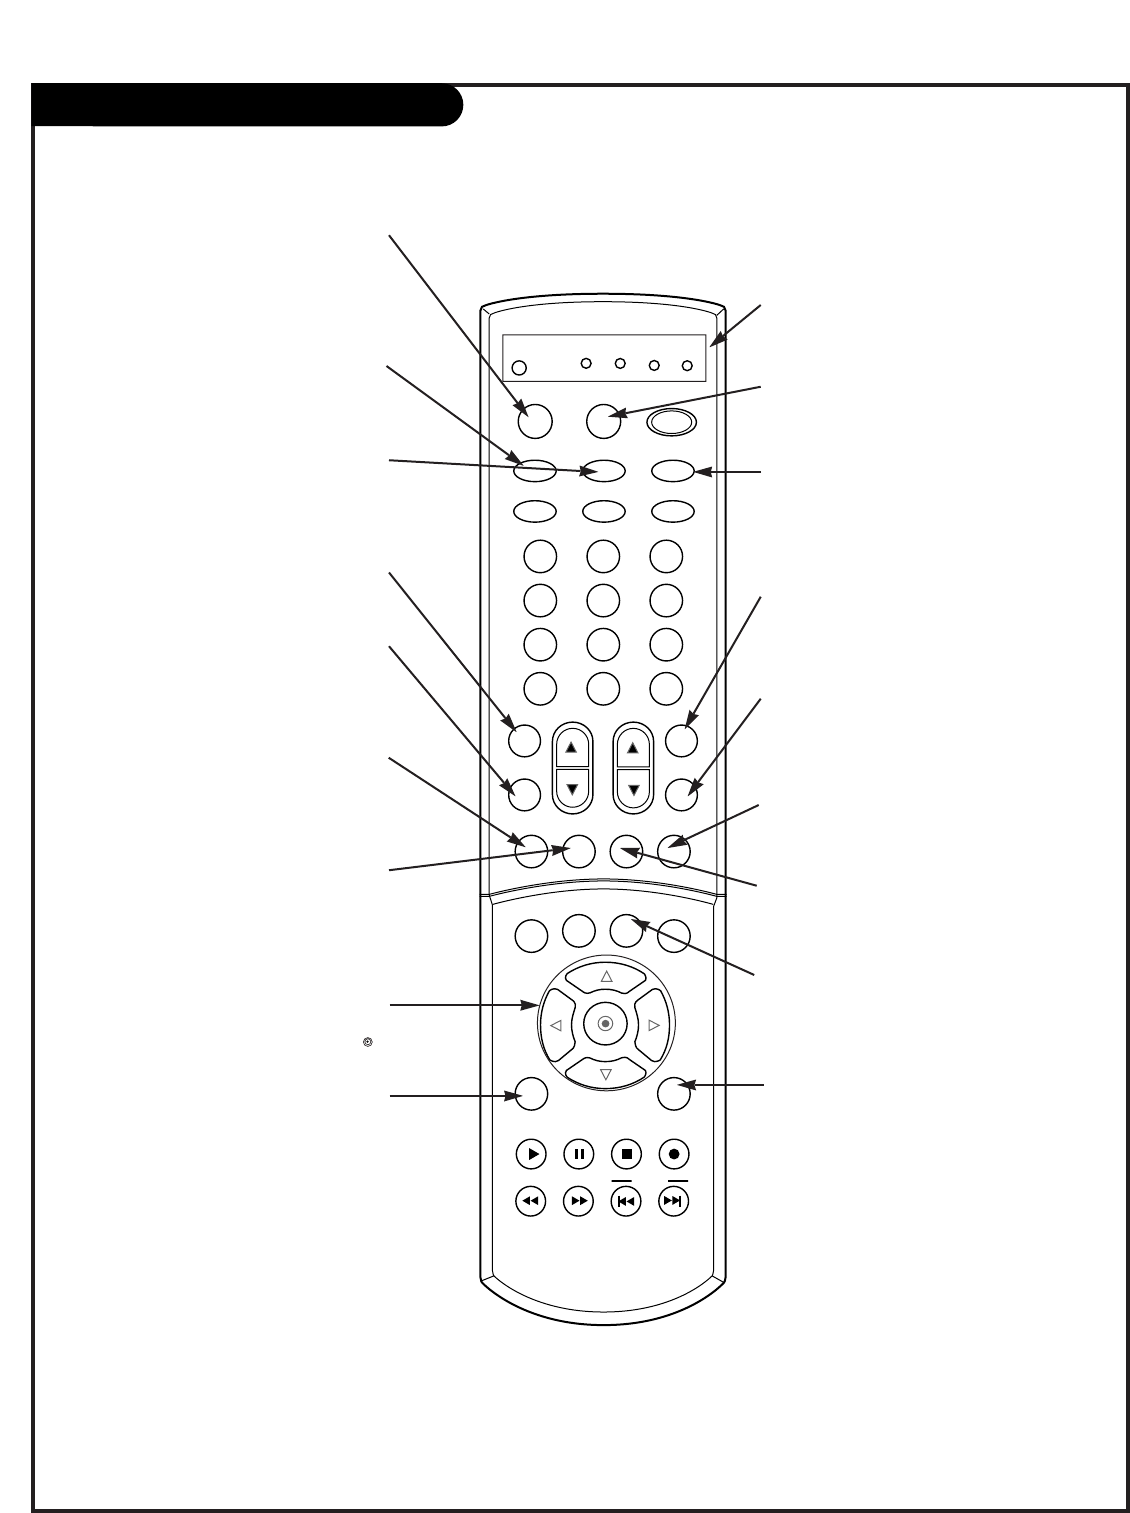 Page 17 of Toshiba Projection Television 44HM85 User Guide